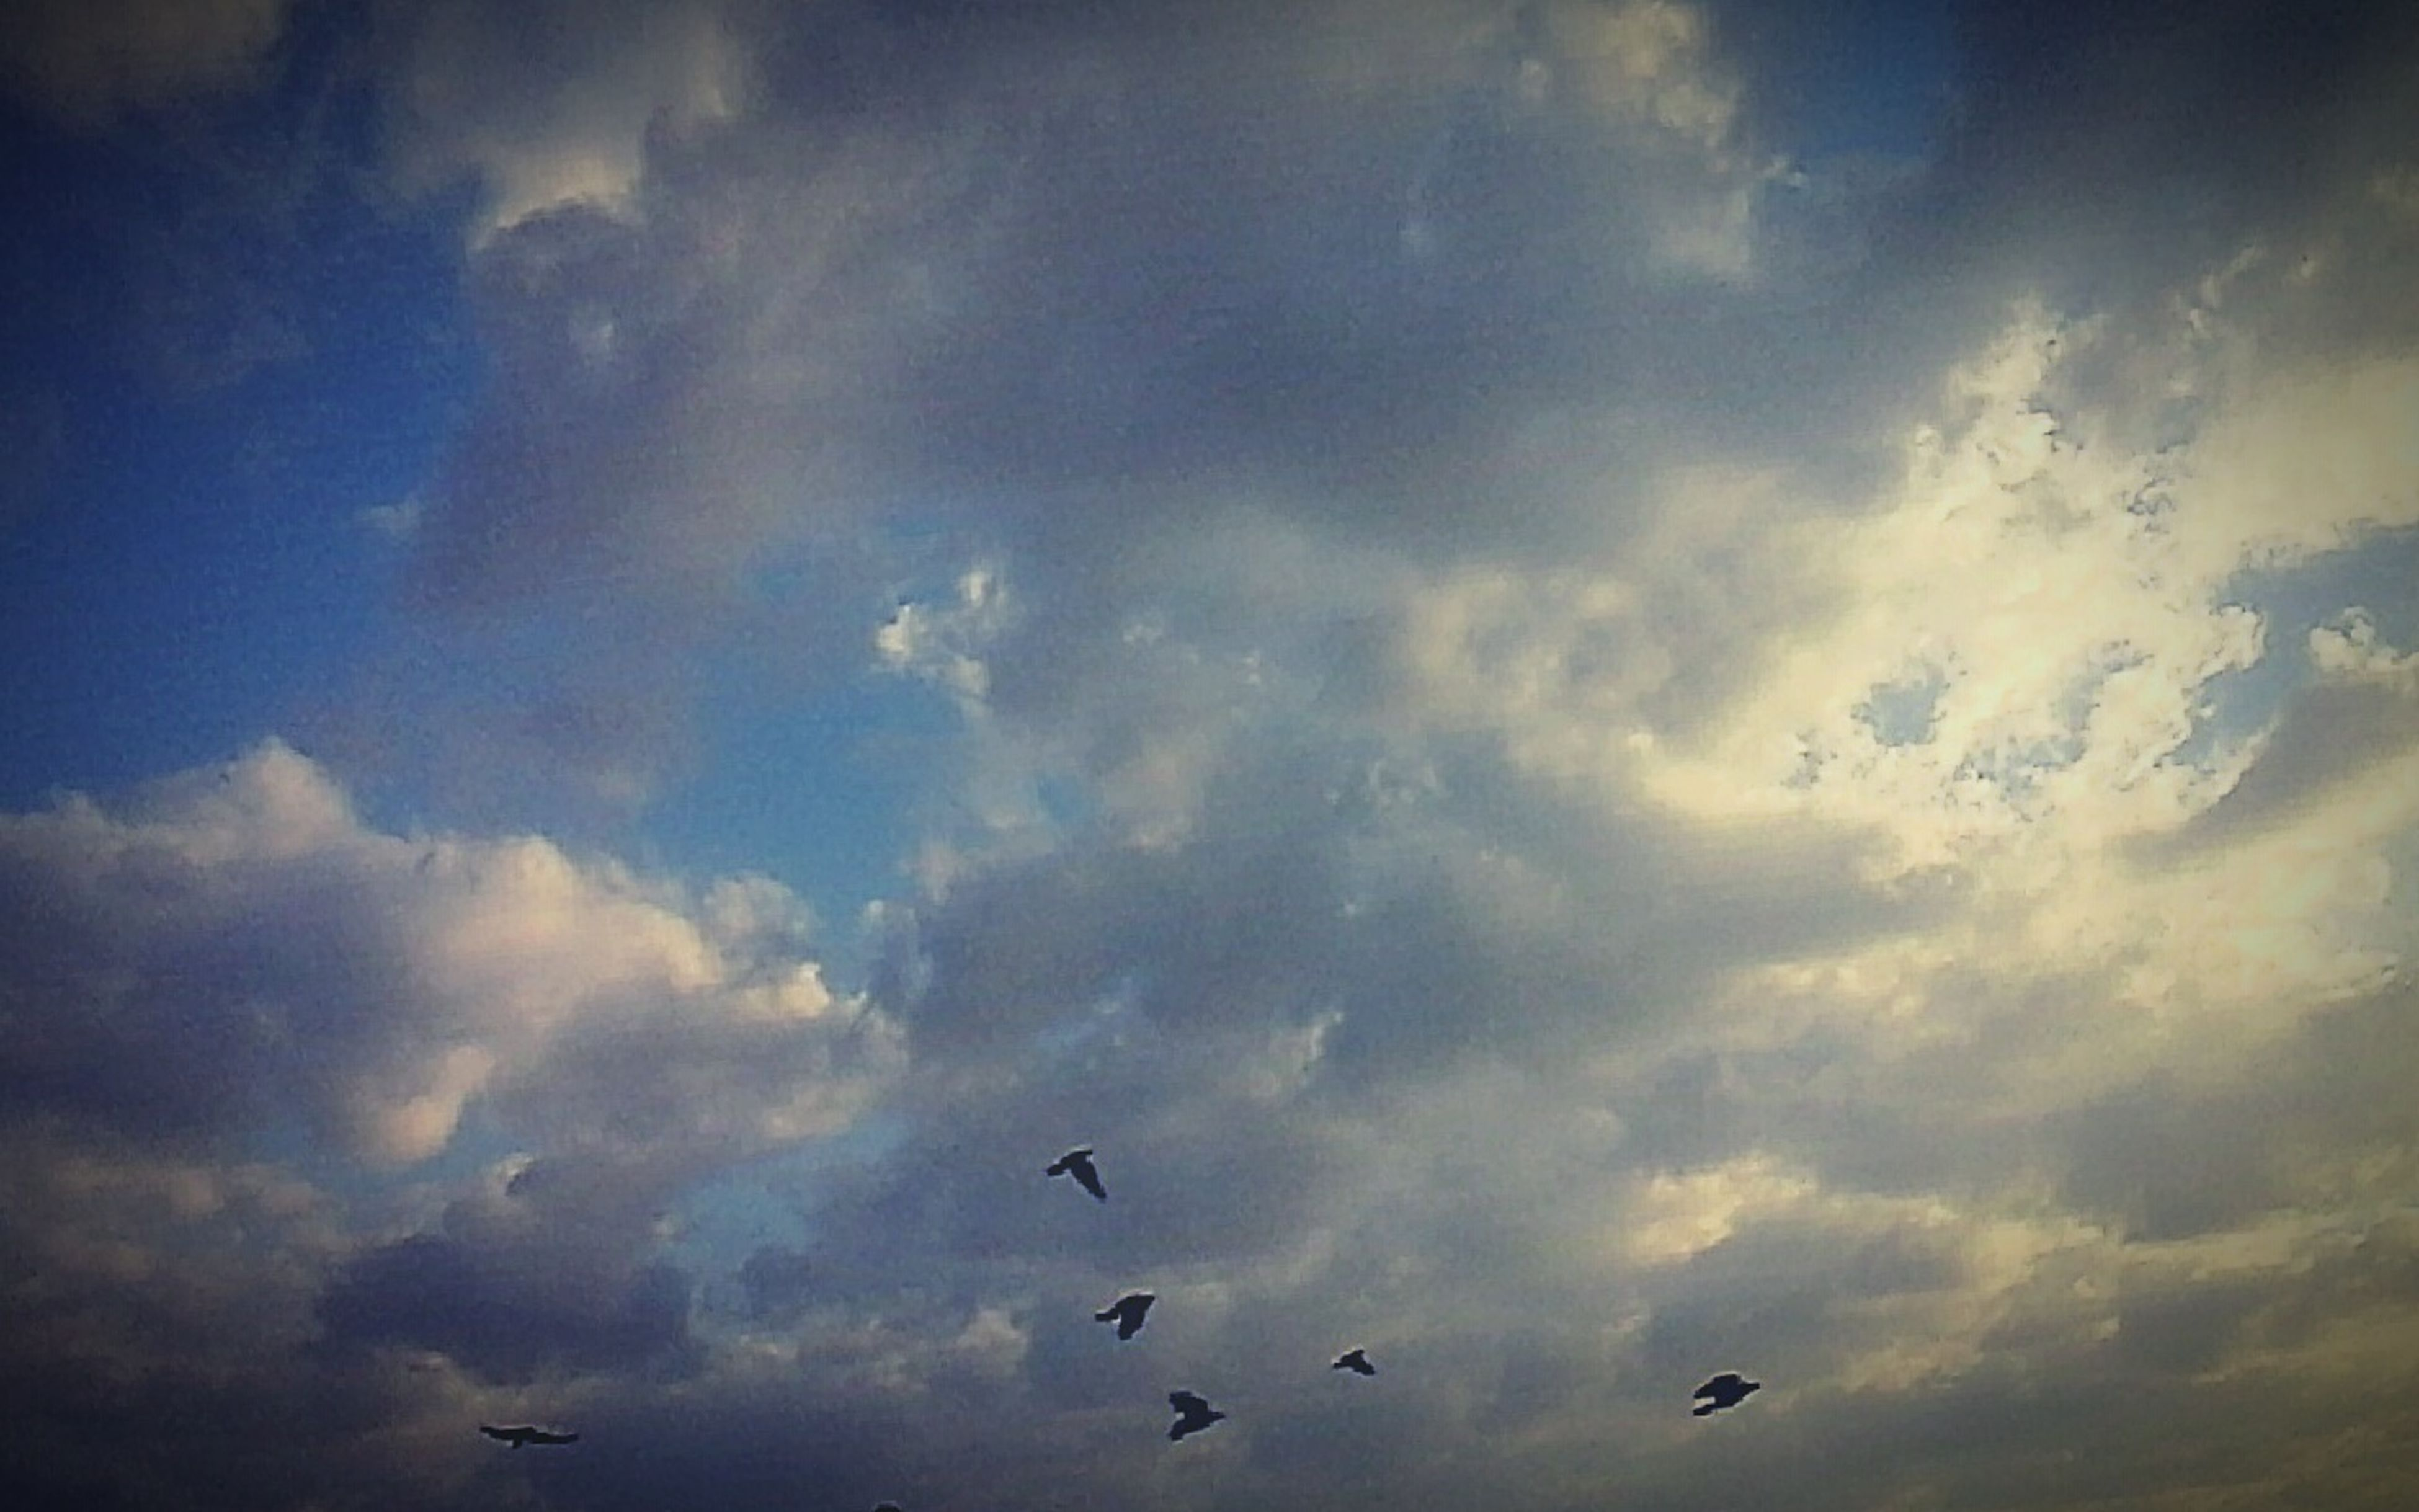 low angle view, sky, bird, flying, animal themes, cloud - sky, animals in the wild, wildlife, beauty in nature, nature, cloudy, cloud, tranquility, blue, scenics, silhouette, outdoors, no people, tranquil scene